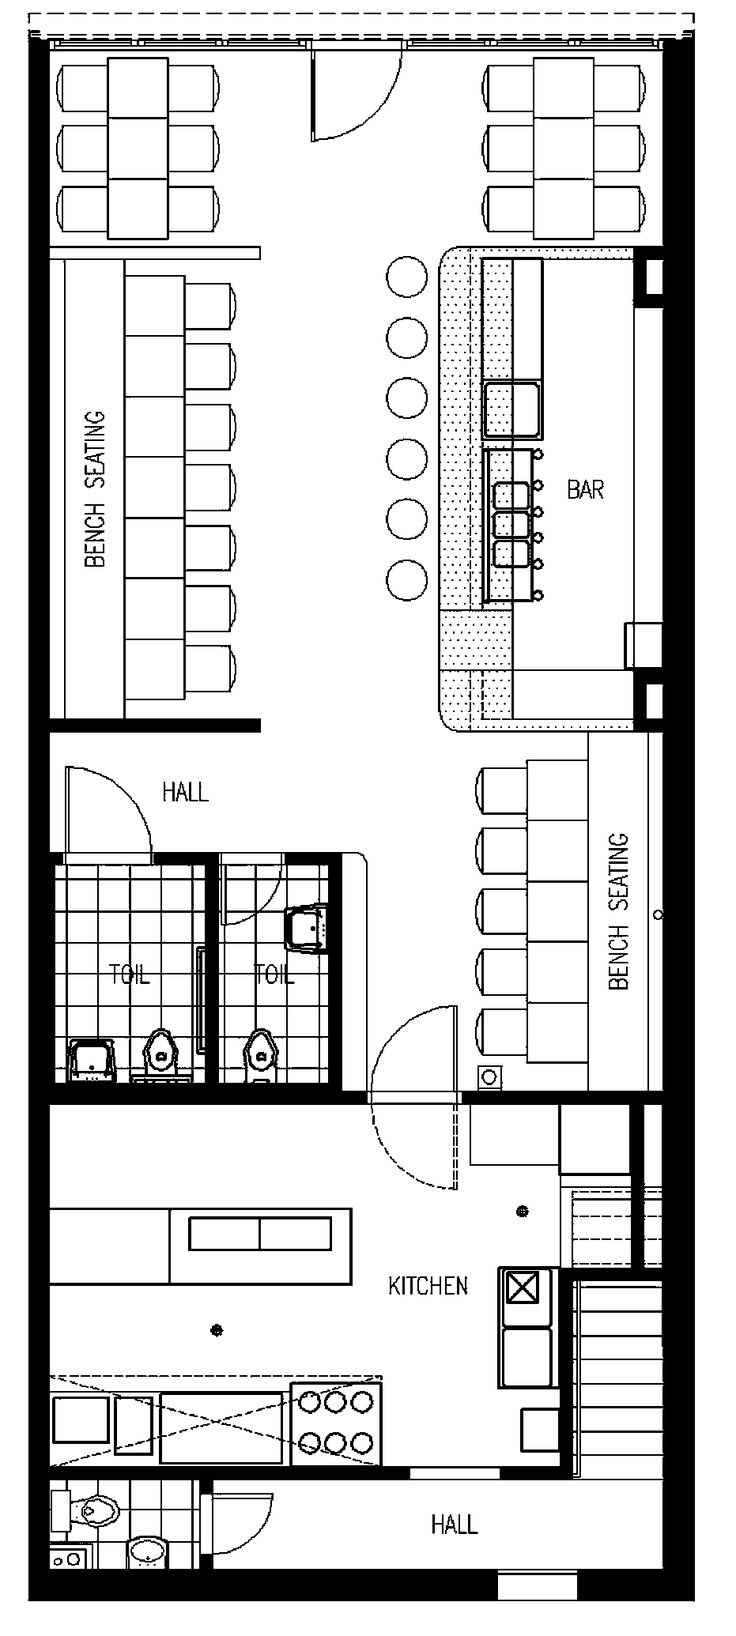 Cafe Floor Plan moreover 405957353888257551 likewise Arranging Furniture In A 12 Foot Wide By 24 Foot Long Living Room further Simple Floor Plan Of A Bungalow House additionally 127156389457258647. on sitting room design ideas